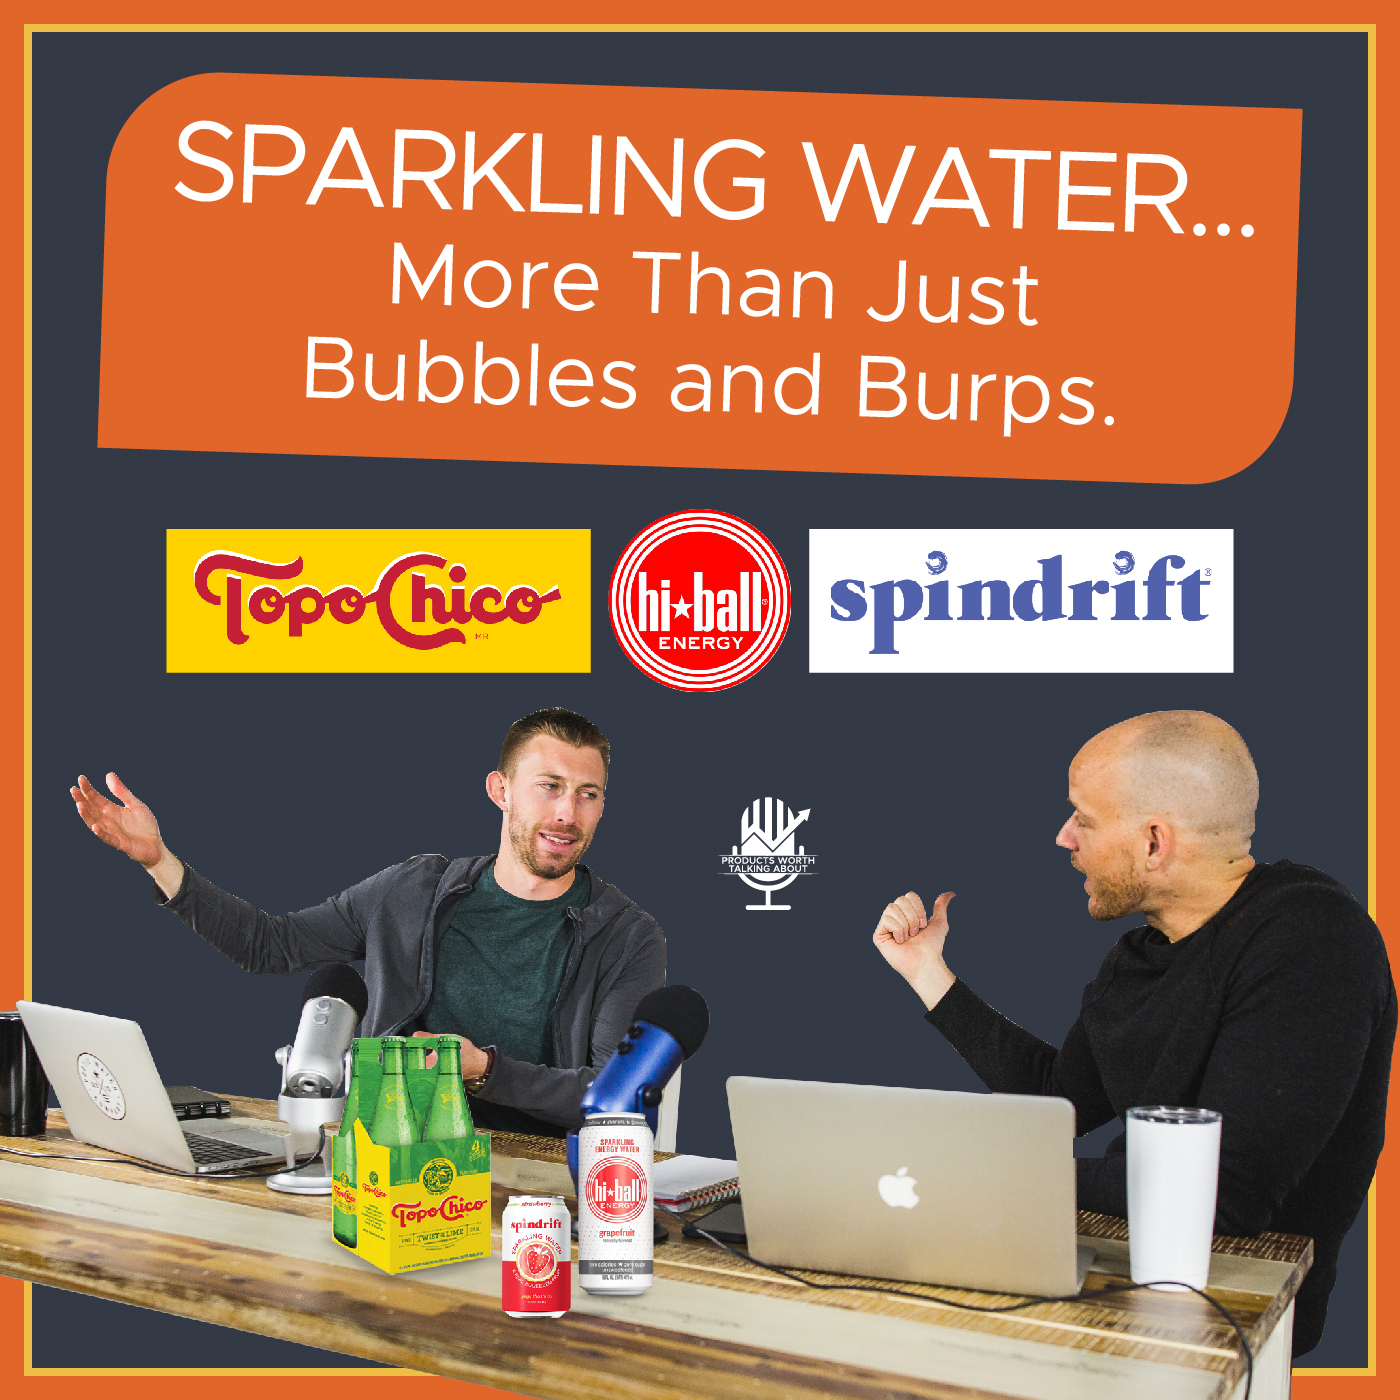 Sparkling Water Brand Reviews for 2020 – Not Just Bubbles and Burps